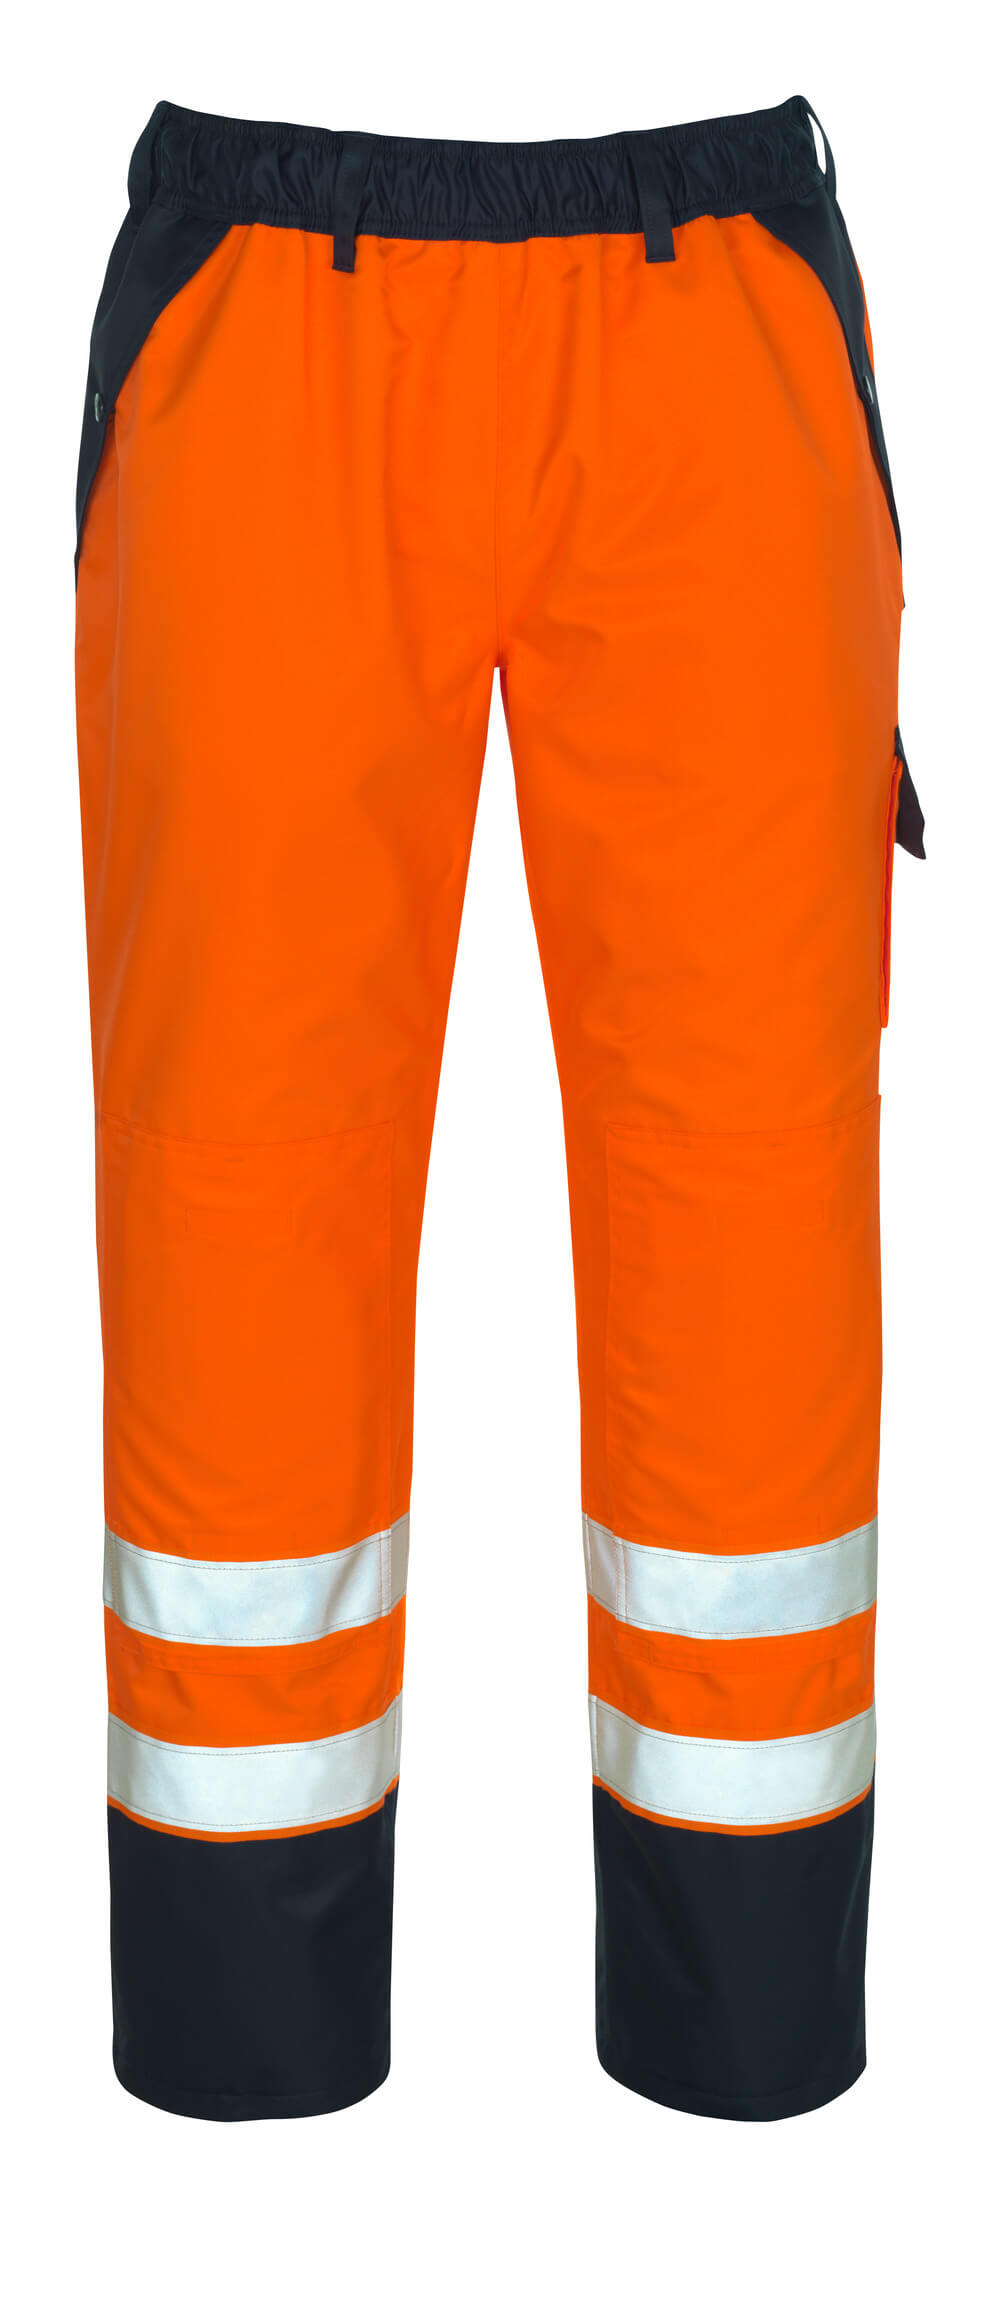 07090-880-141 Over Trousers - hi-vis orange/navy